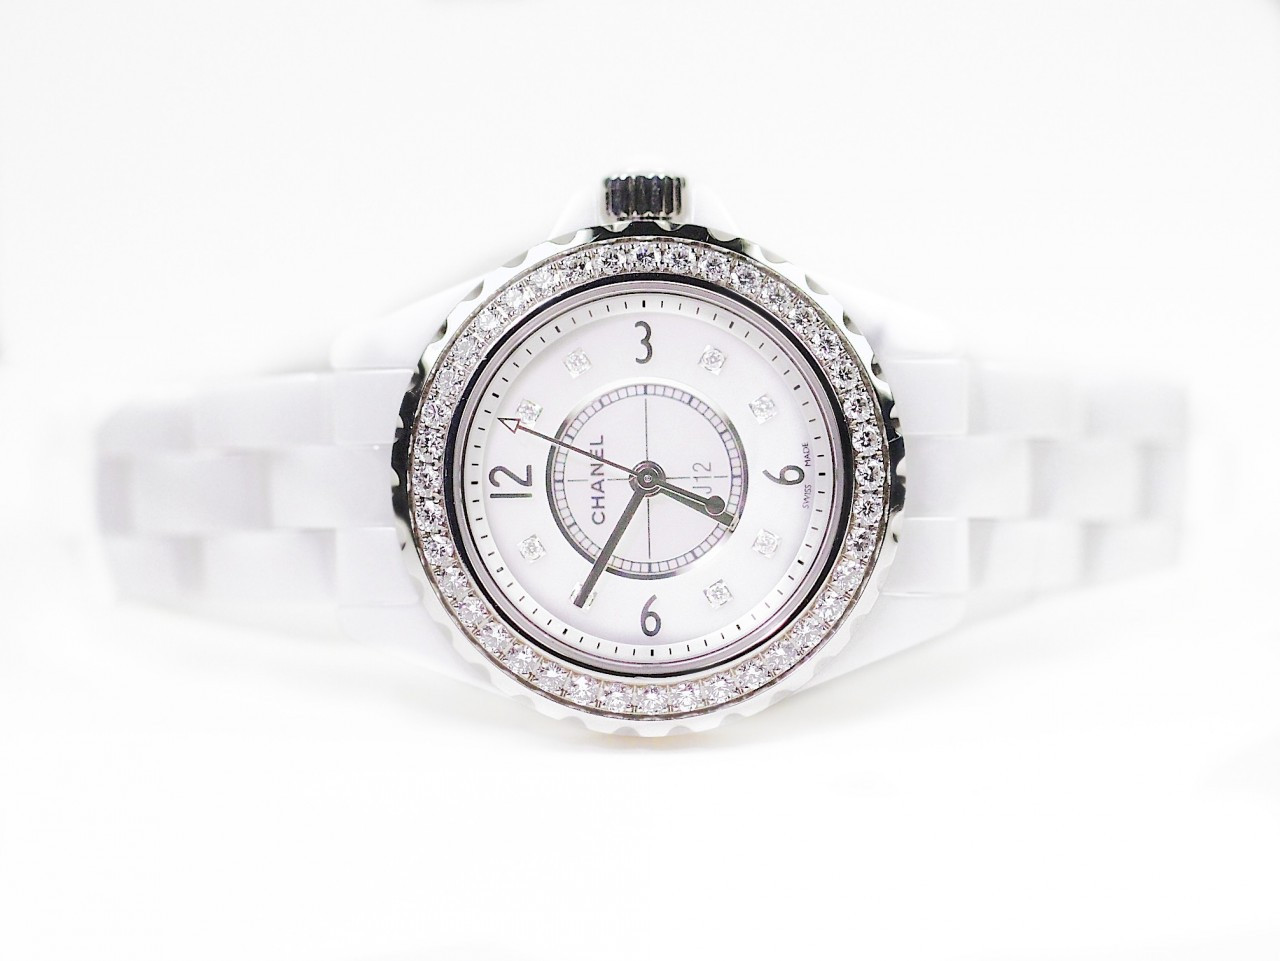 watch chanel jonathan buyer and the white black look watches a ceramic s